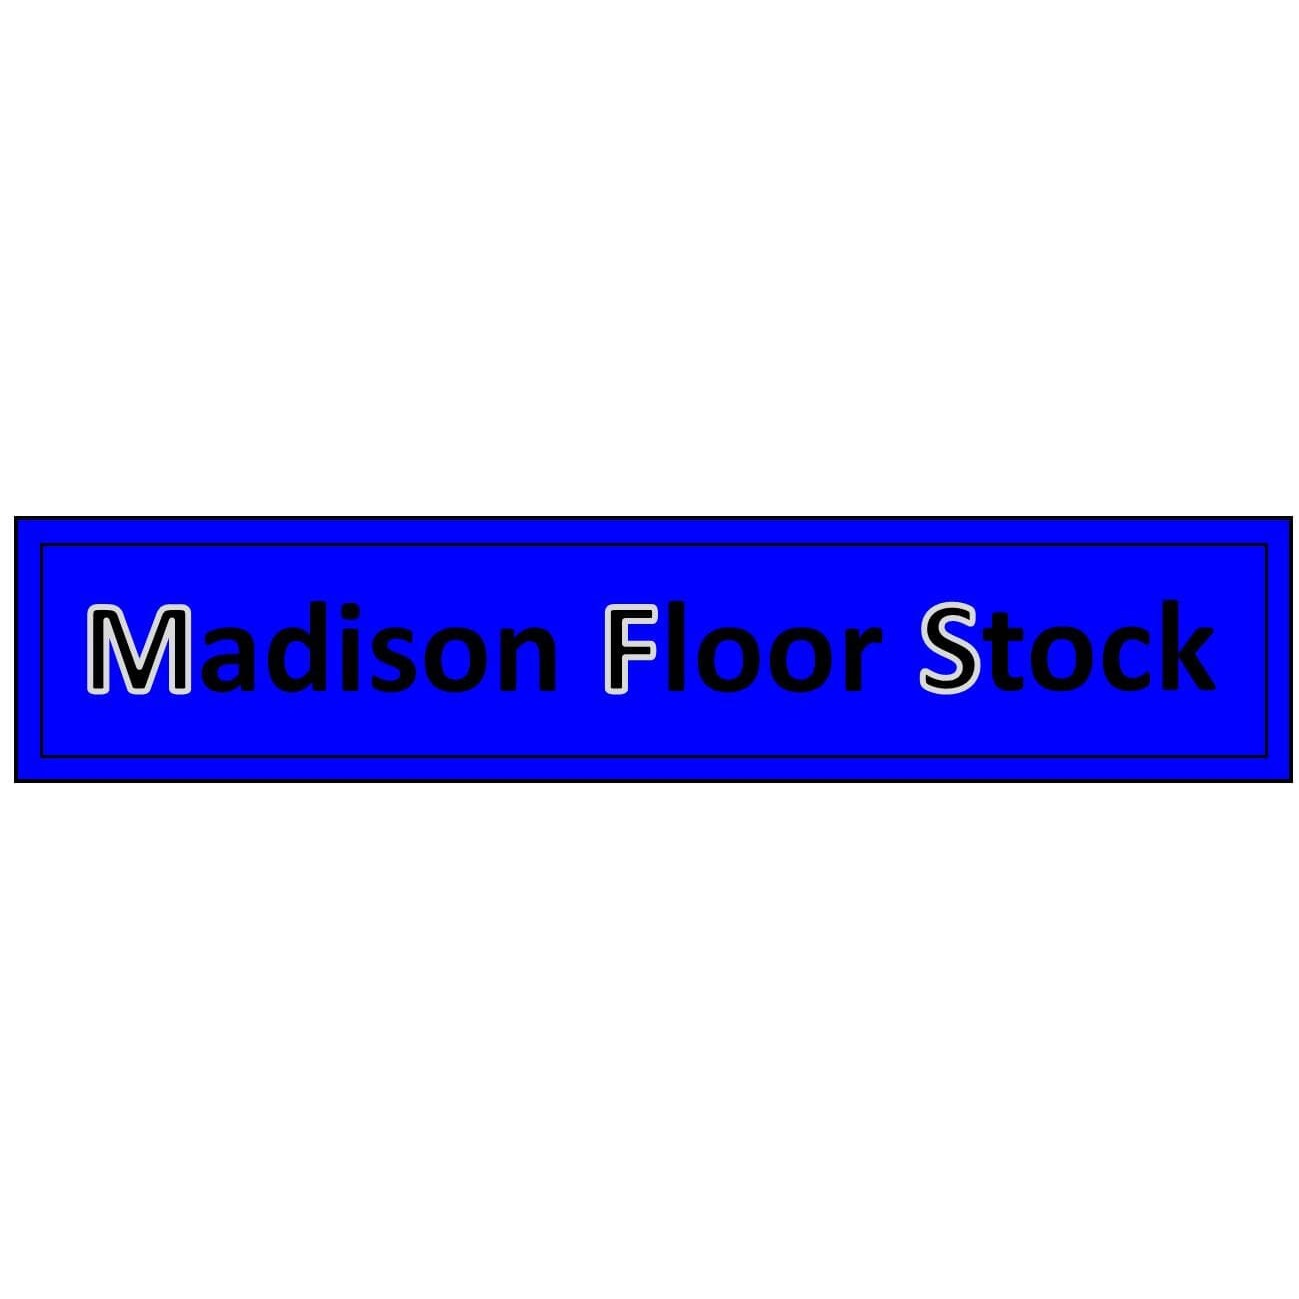 Madison Floor Stock